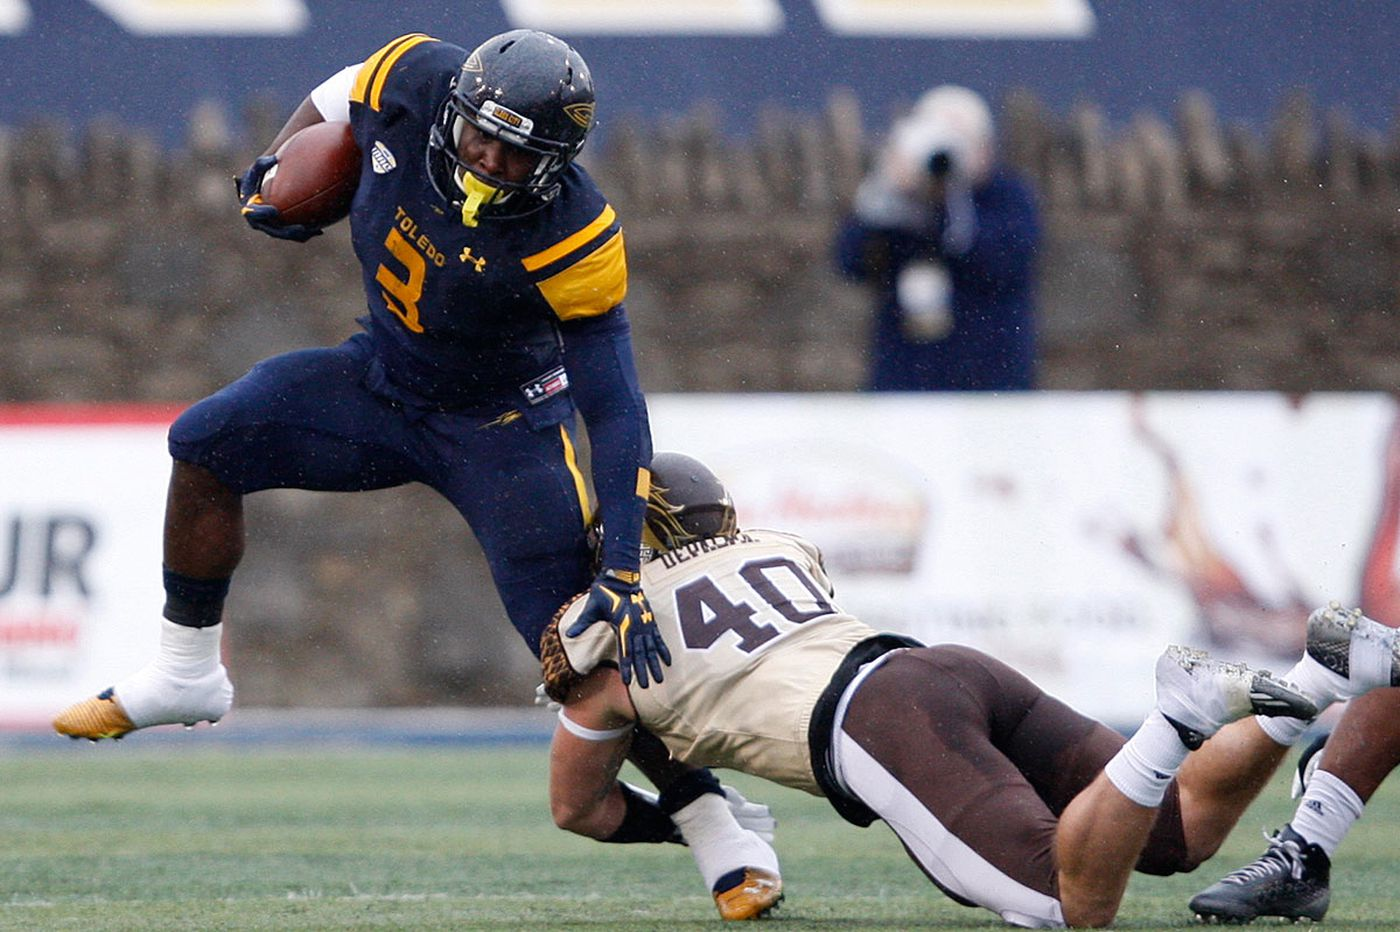 Toledo's stacked running game will challenge Temple